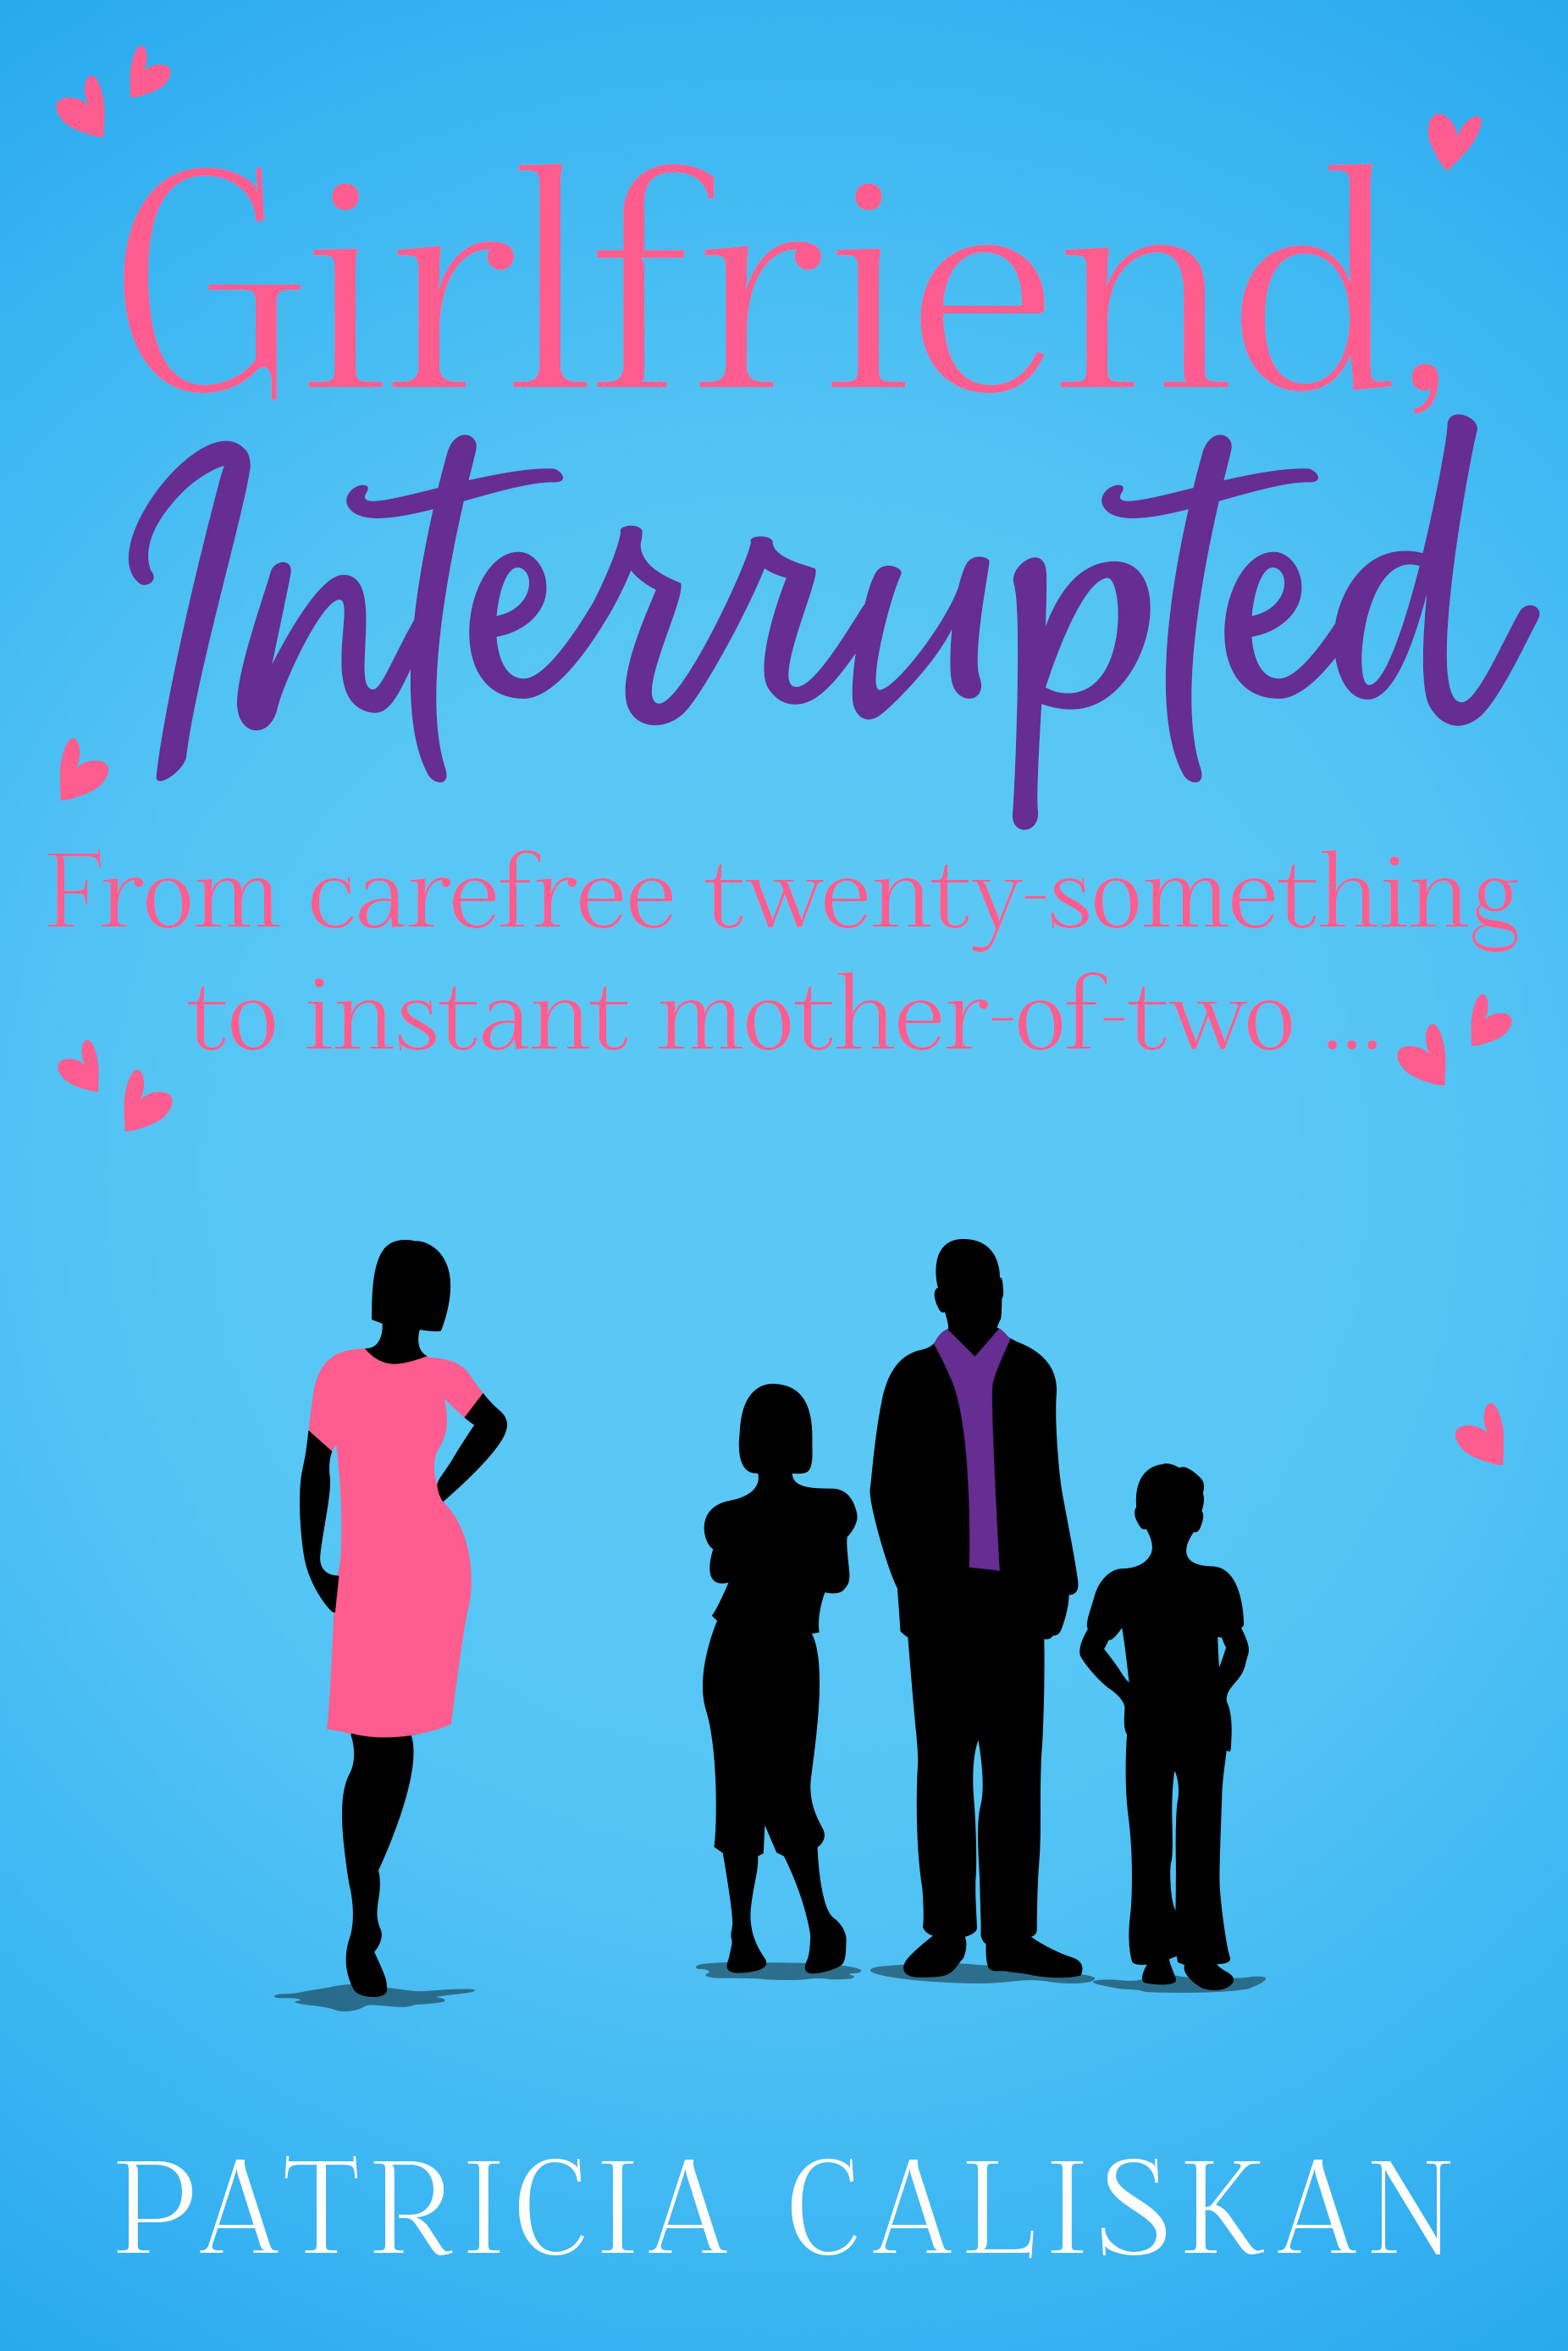 Book Cover: Girl Interrupted by Patricia Caliskan